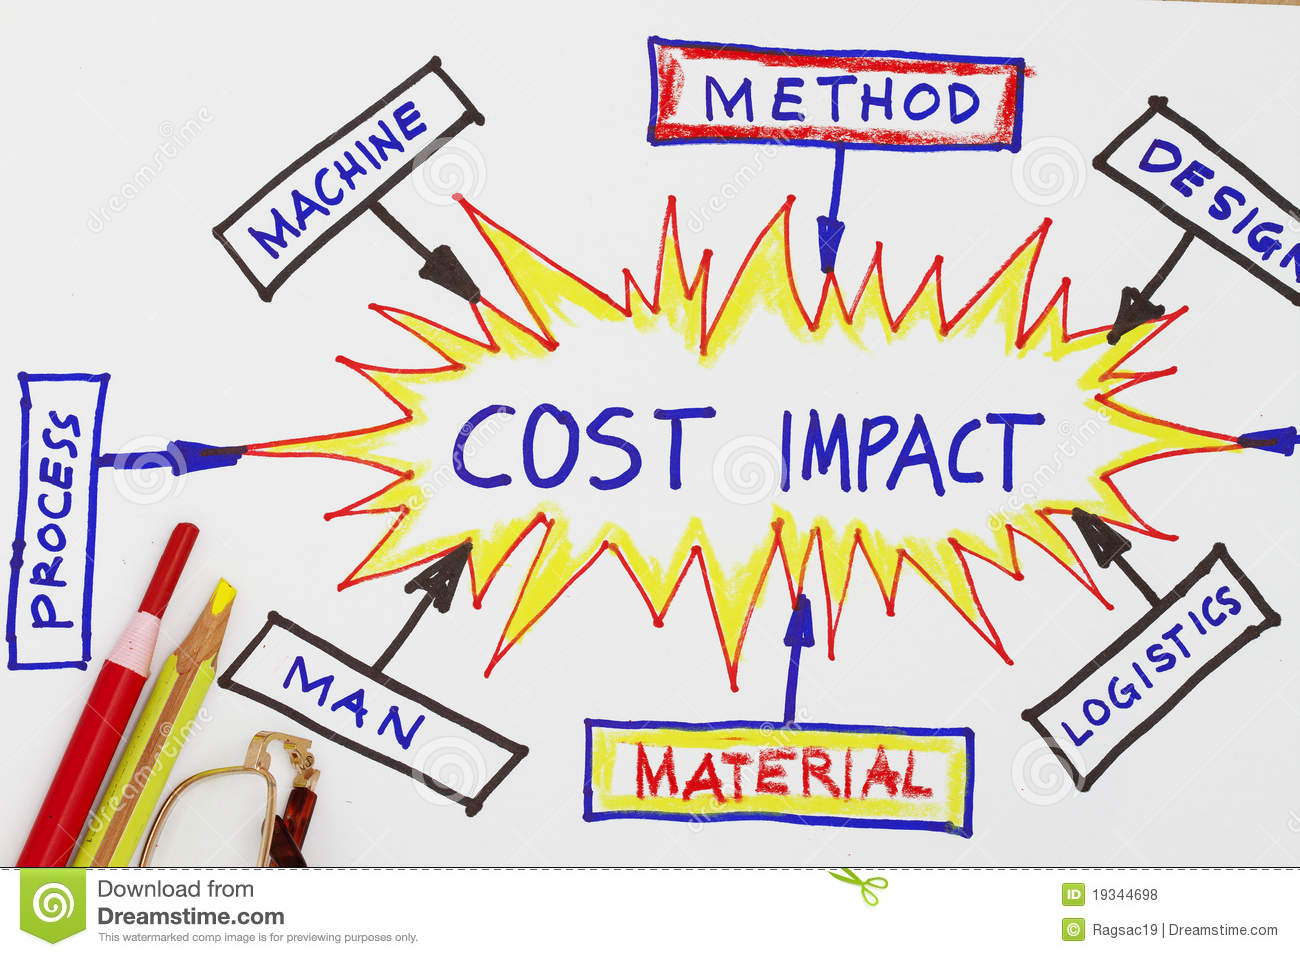 Cost Impact Cost Reduction Abstract Royalty Free Stock Photos - Image ...: www.dreamstime.com/royalty-free-stock-photos-cost-impact-cost...